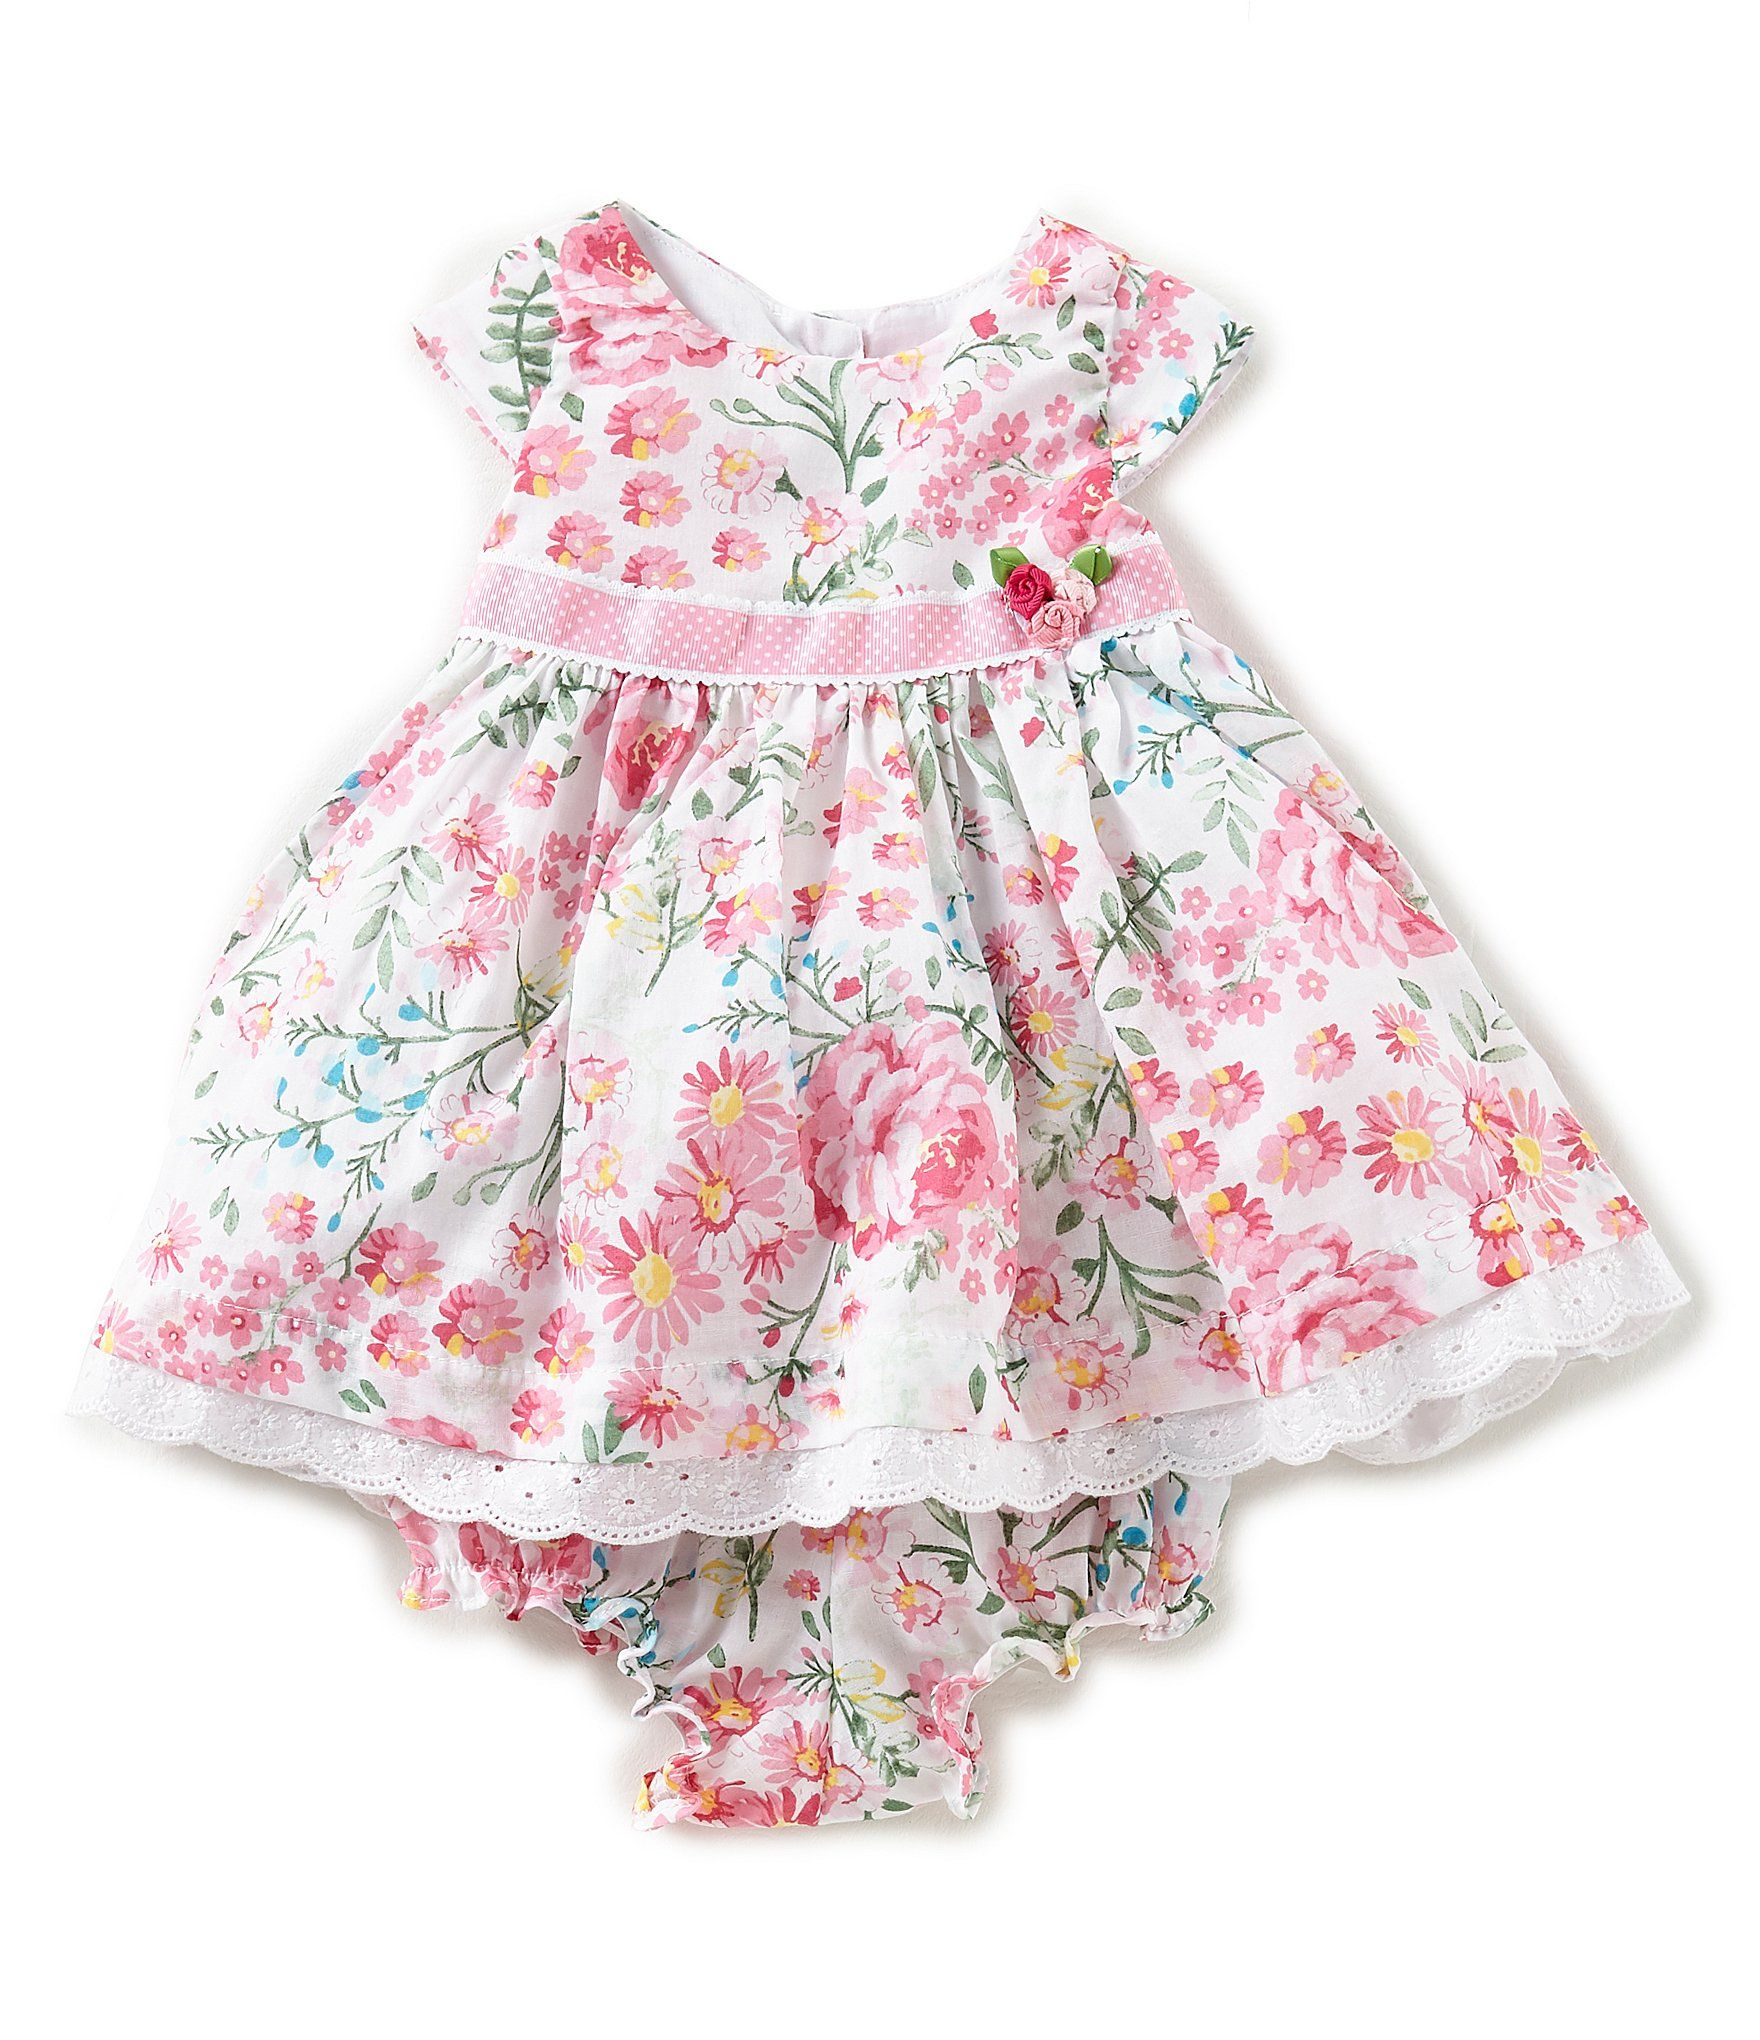 d84c2a7fa Shop for Laura Ashley London Baby Girls Newborn-24 Months Cap-Sleeve Floral  Dress at Dillards.com. Visit Dillards.com to find clothing, accessories,  shoes, ...